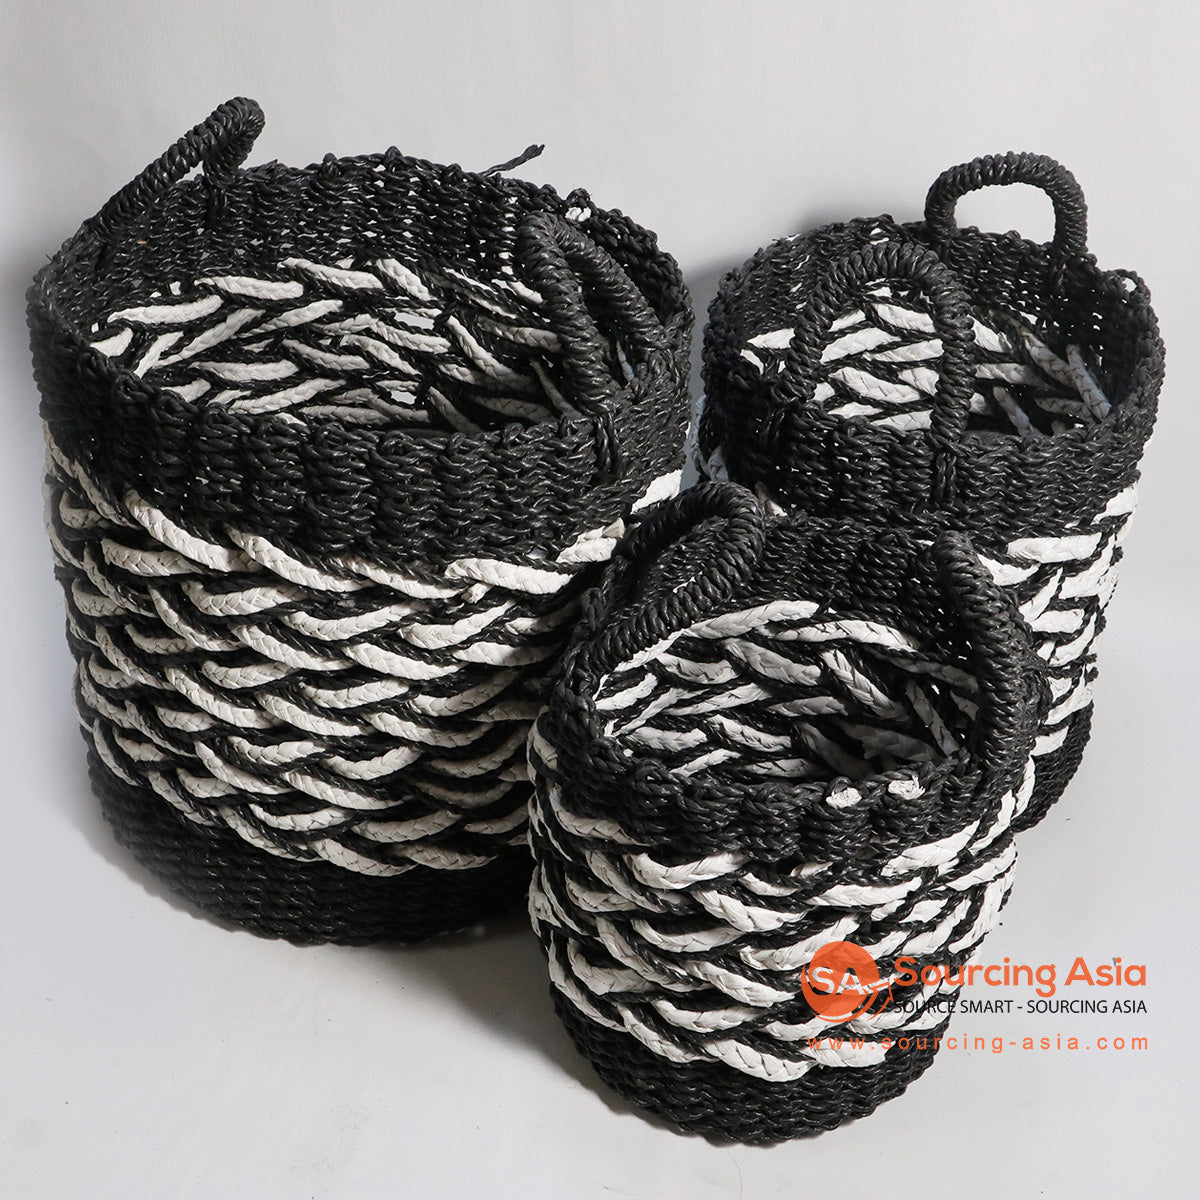 HBSC138-1 SET OF 3 MENDONG AND SEA GRASS BASKETS